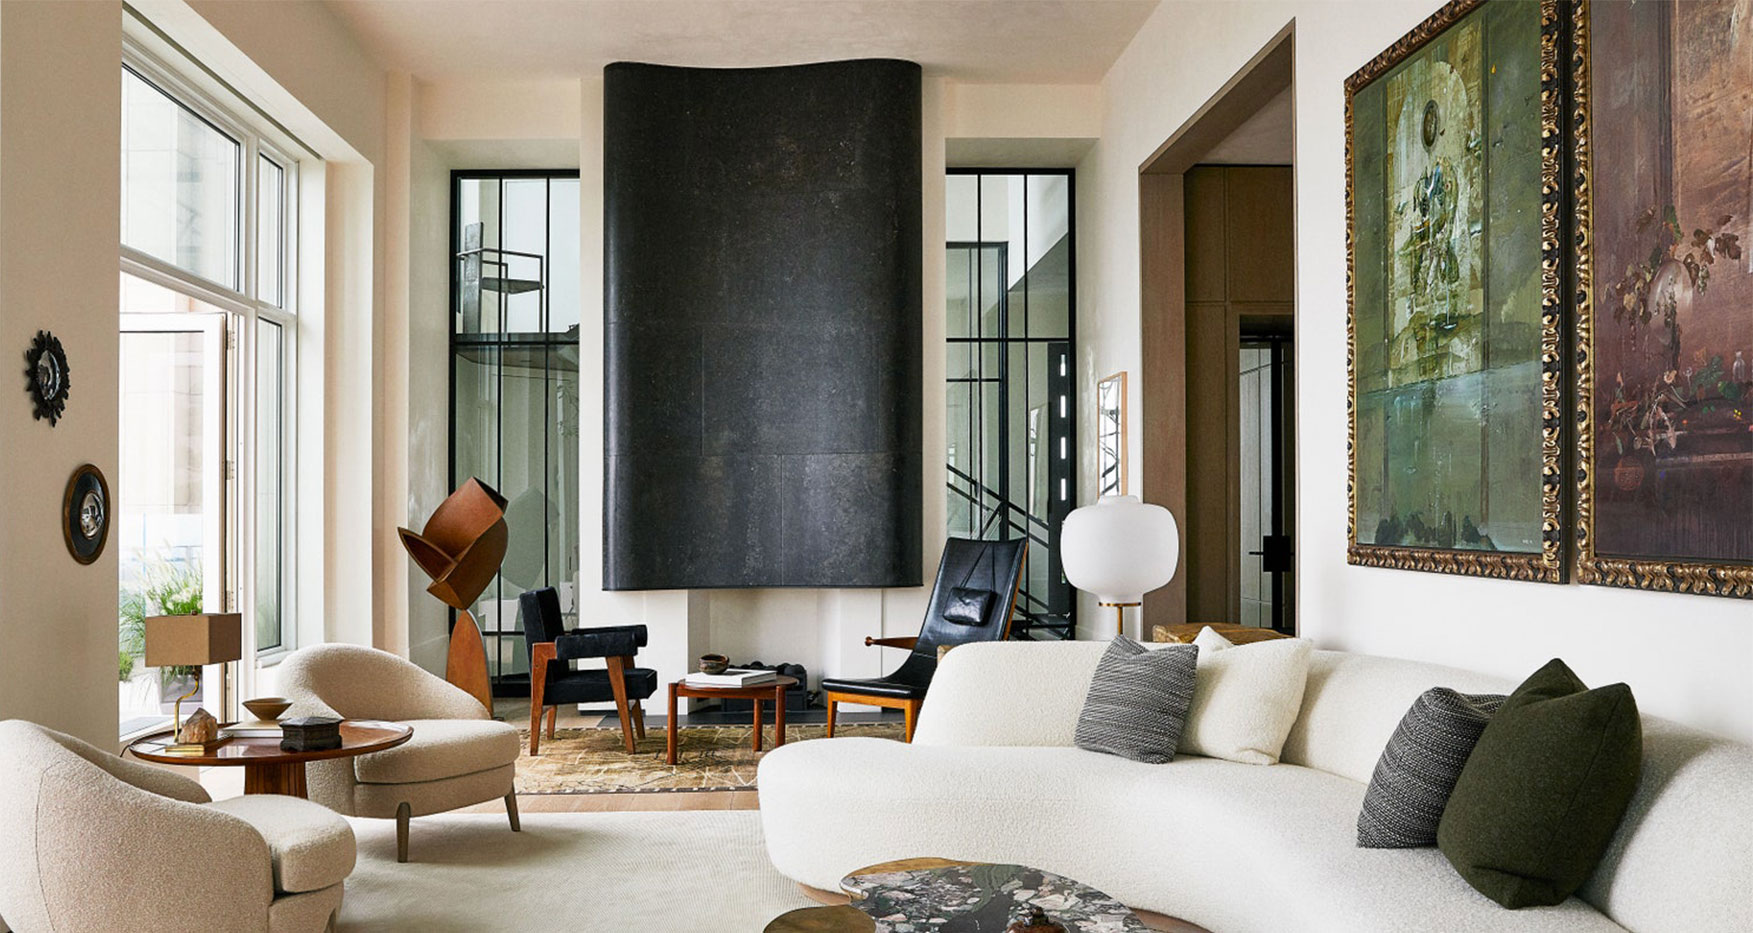 Source Studio Member Carol Egan's New Furniture Pieces are Included in this Exquisite Home by Monique Gibson, as Seen in Architectural Digest